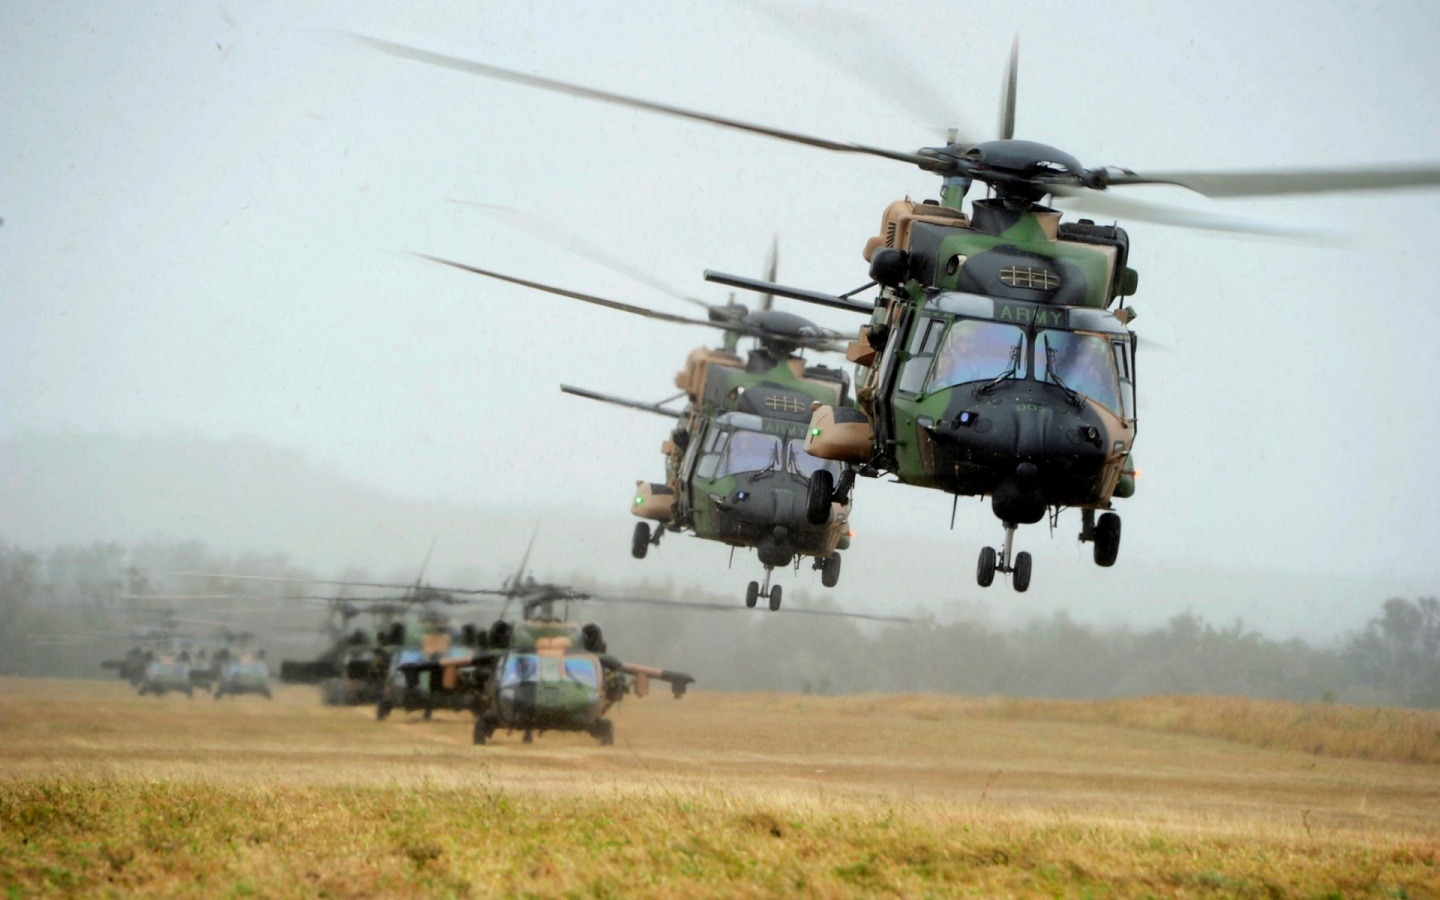 Australian Army Helicopters Wallpapers   1440x900   291518 1440x900